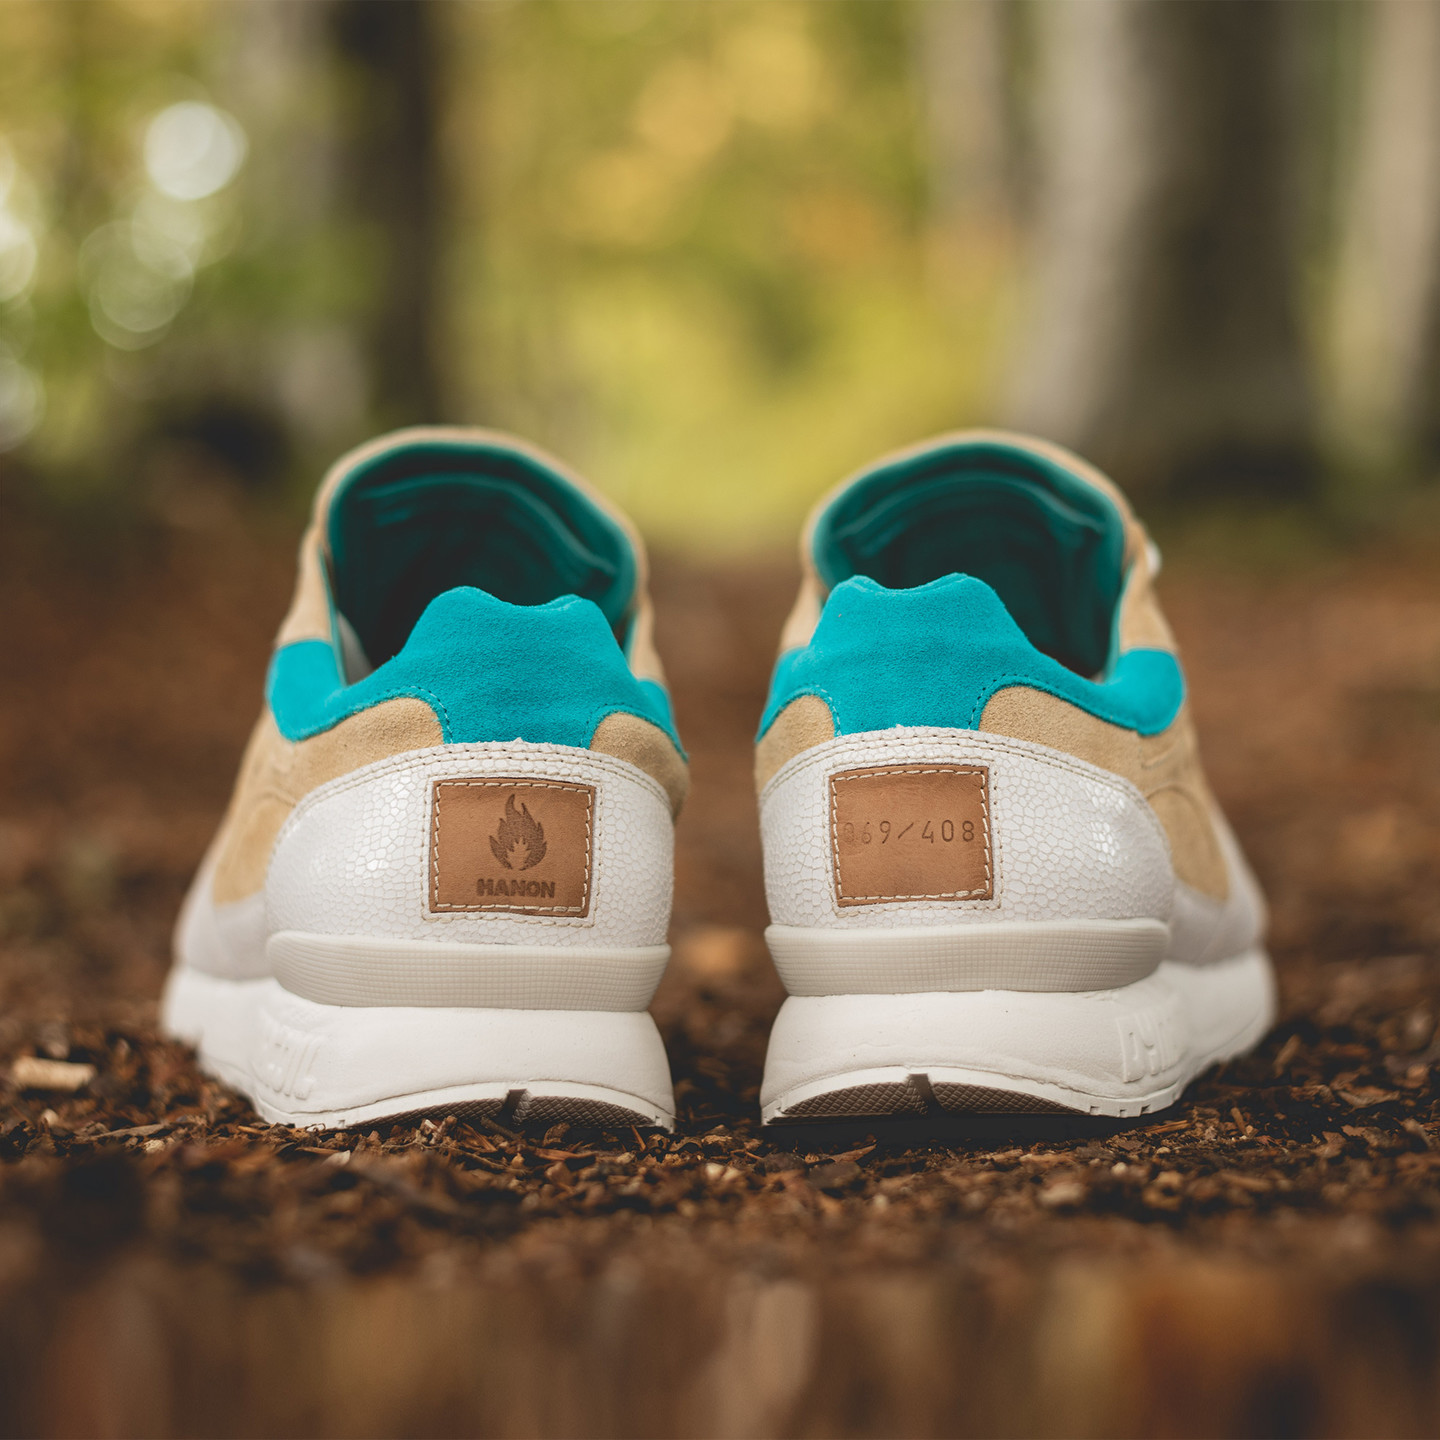 KangaROOS Coil-R1 x Hanon 'Moonshine' - Made in Germany Sand / Off White / Turquoise 47501 0 1200